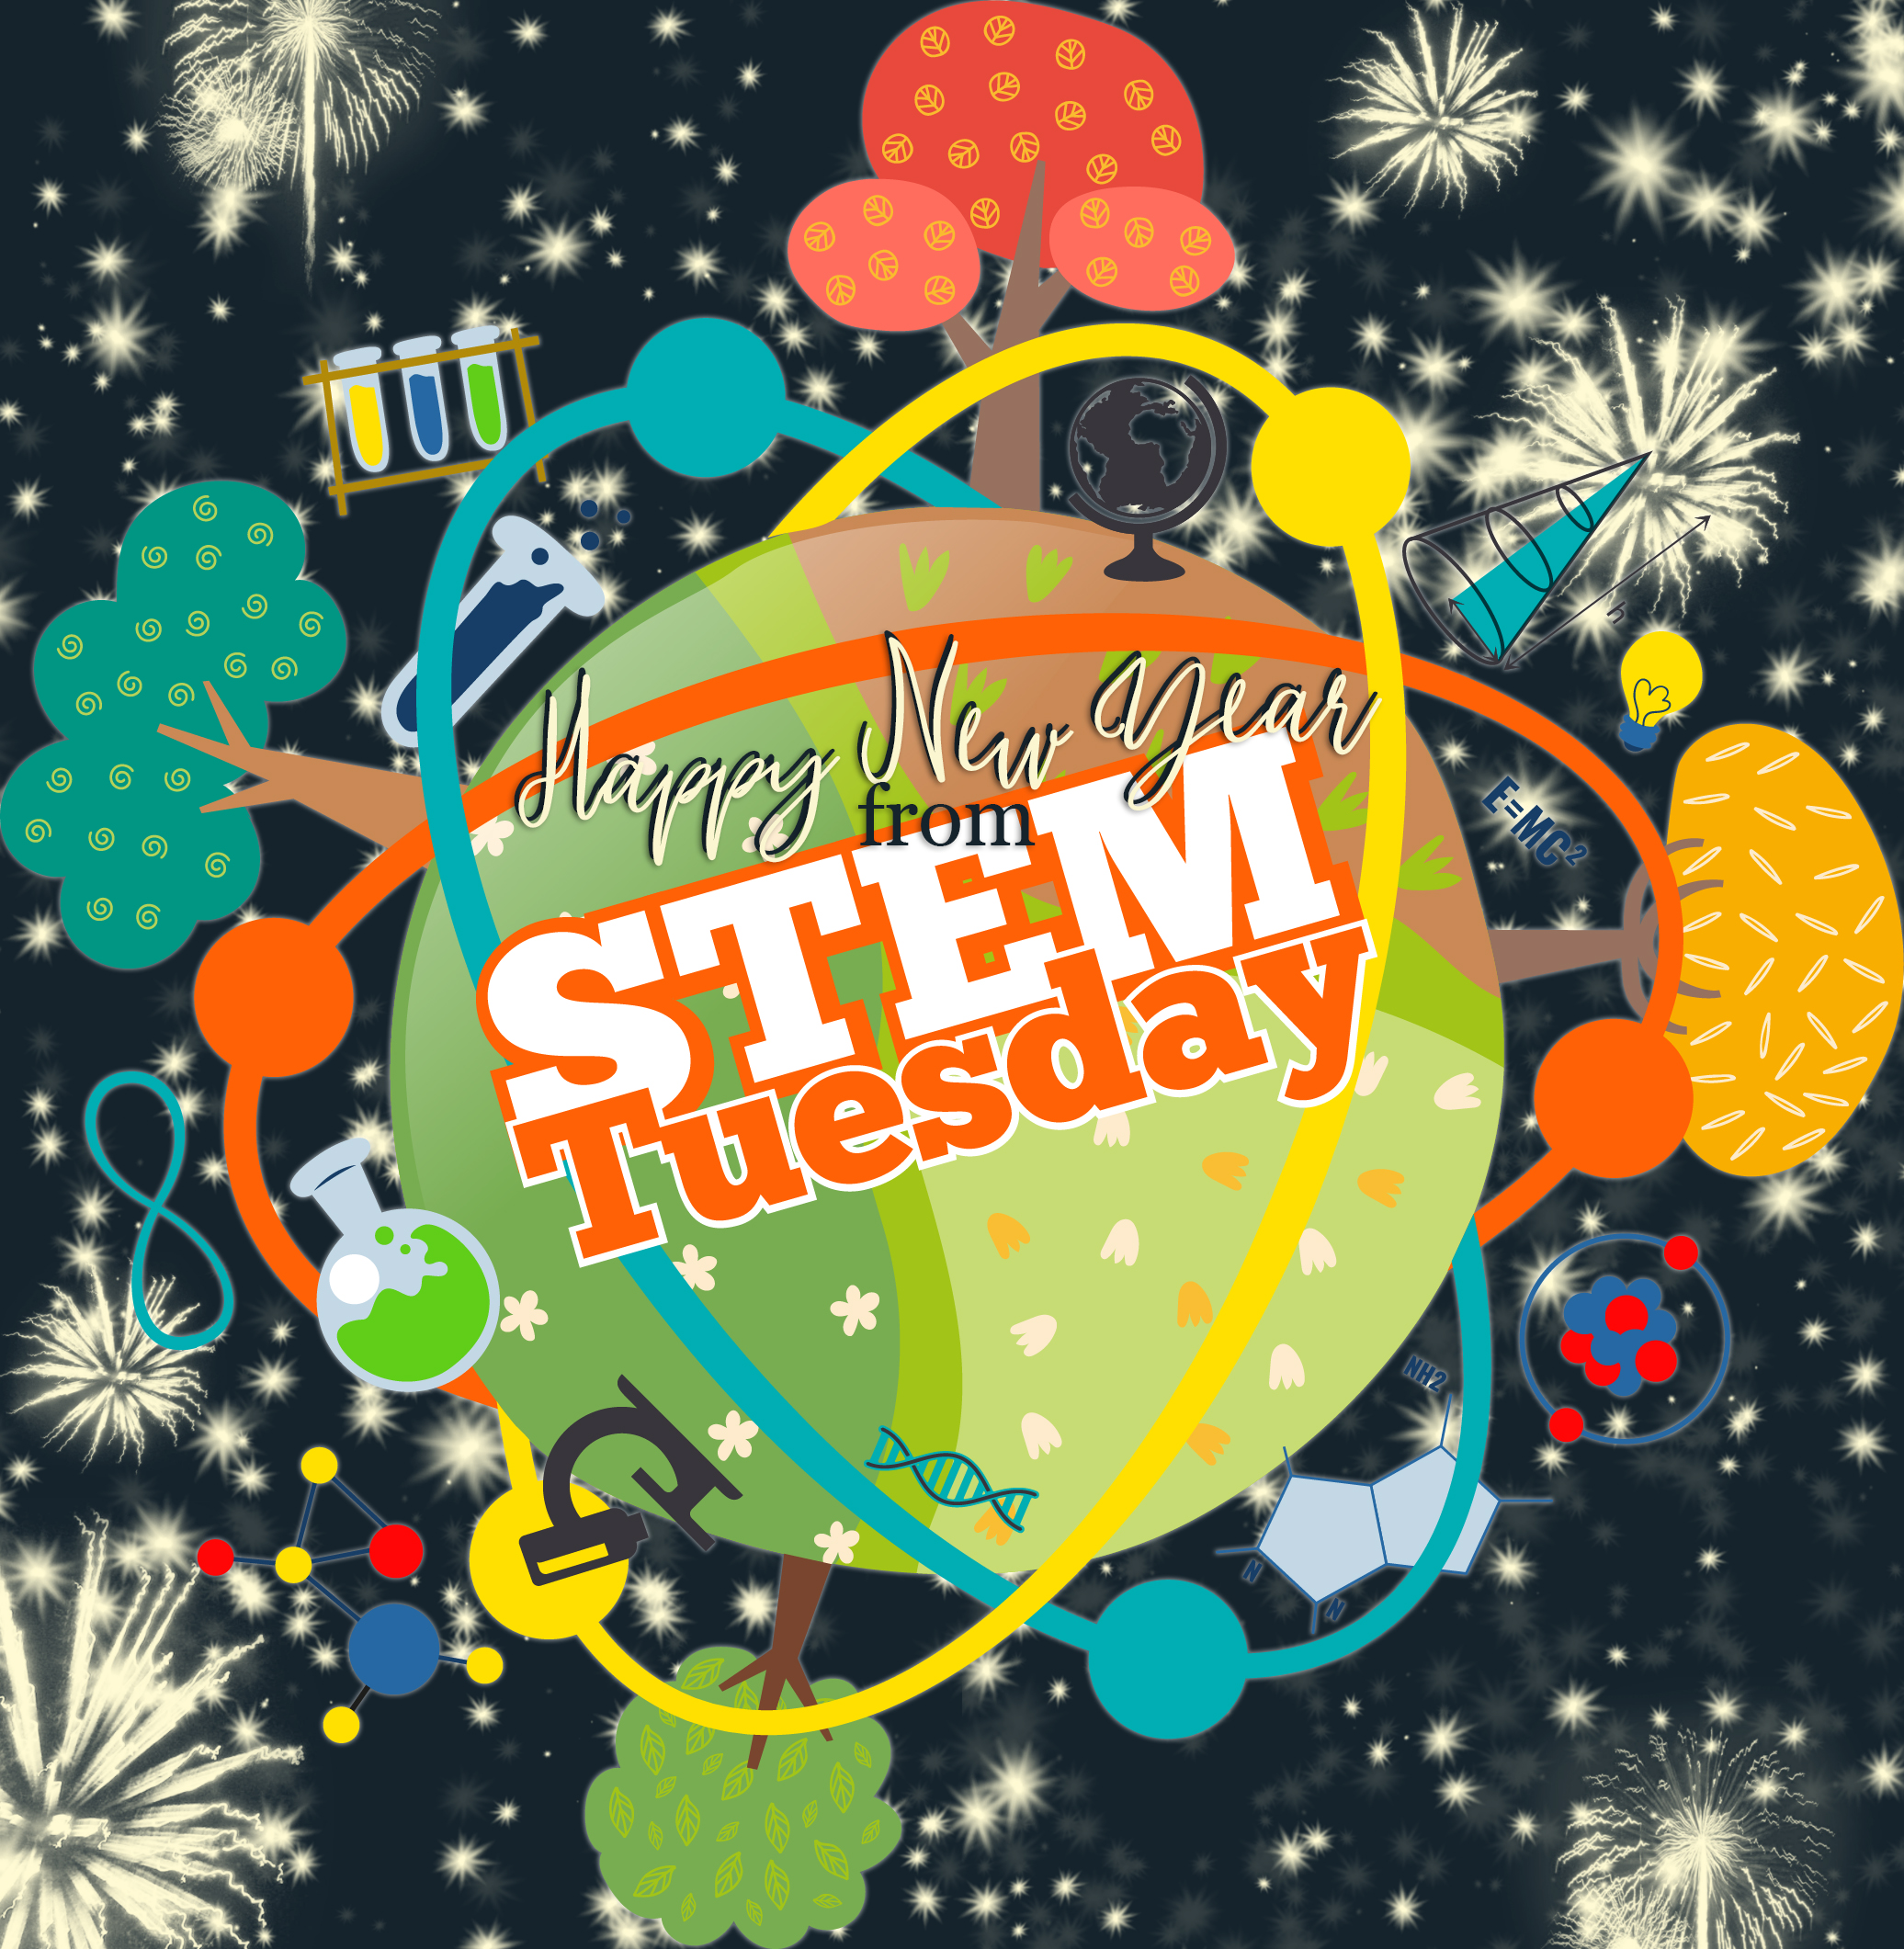 STEM Tuesday Costume Contest